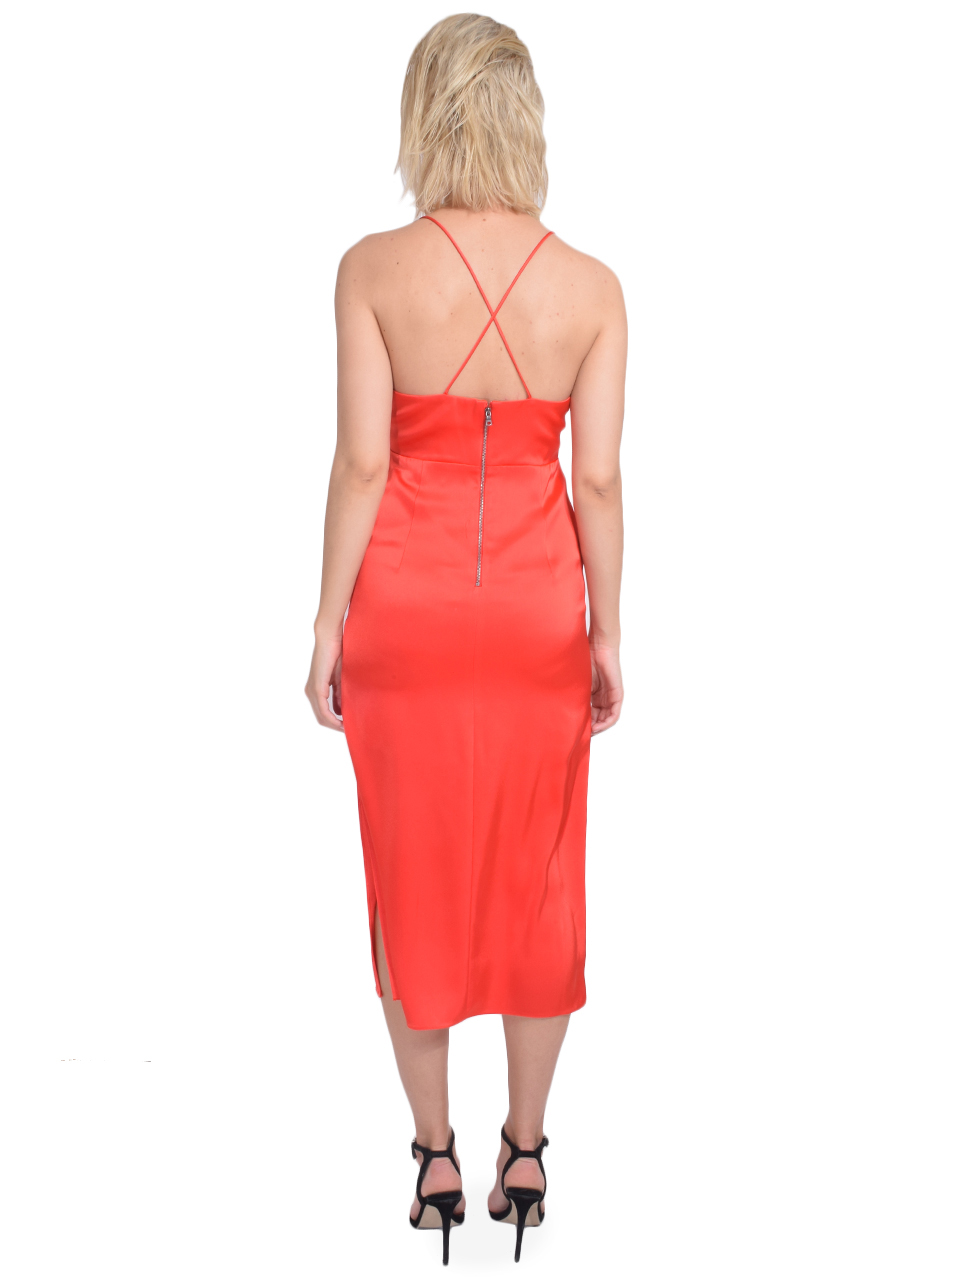 ALICE + OLIVIA Loraine Seamed Slip Midi Dress in Bright Poppy Back View